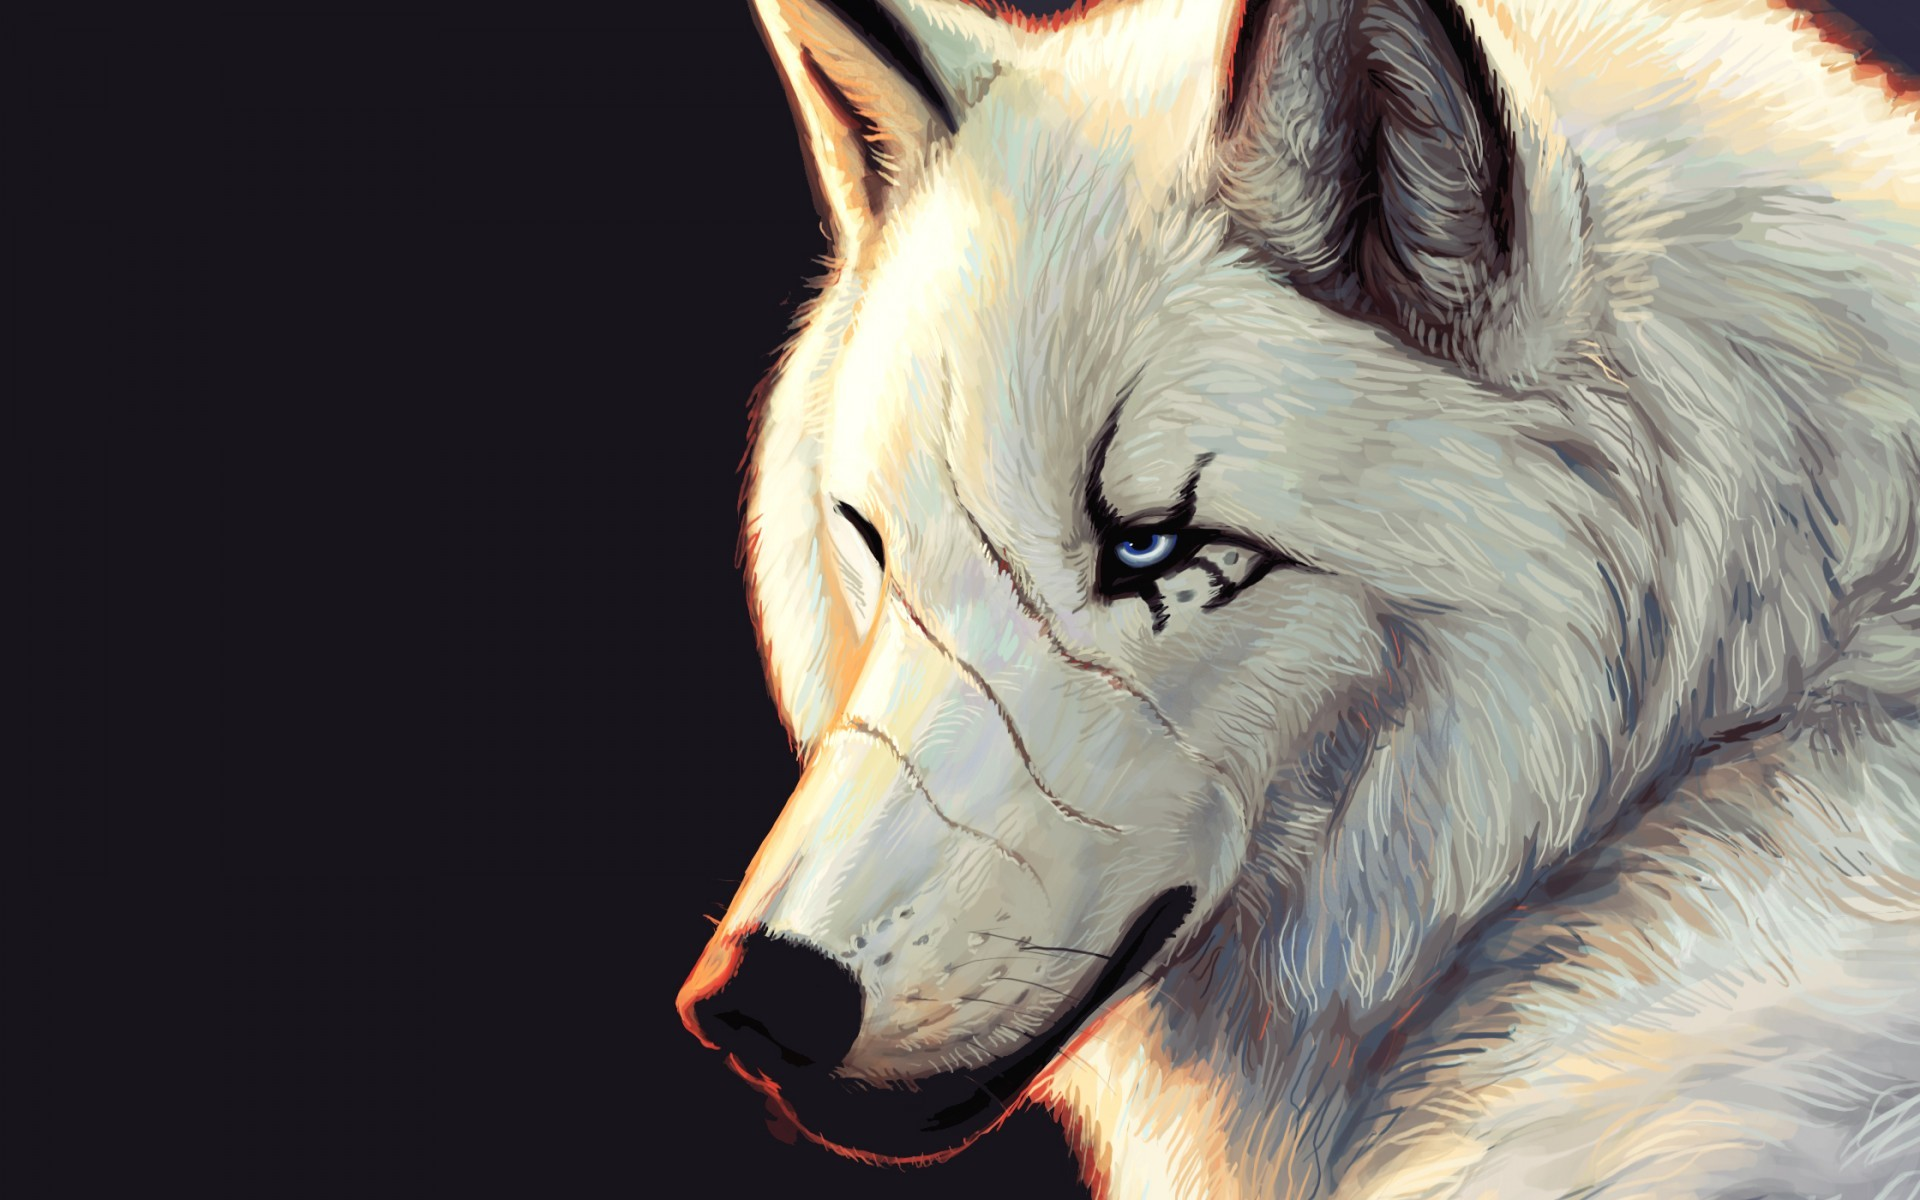 49250 download wallpaper Animals, Wolfs, Pictures screensavers and pictures for free